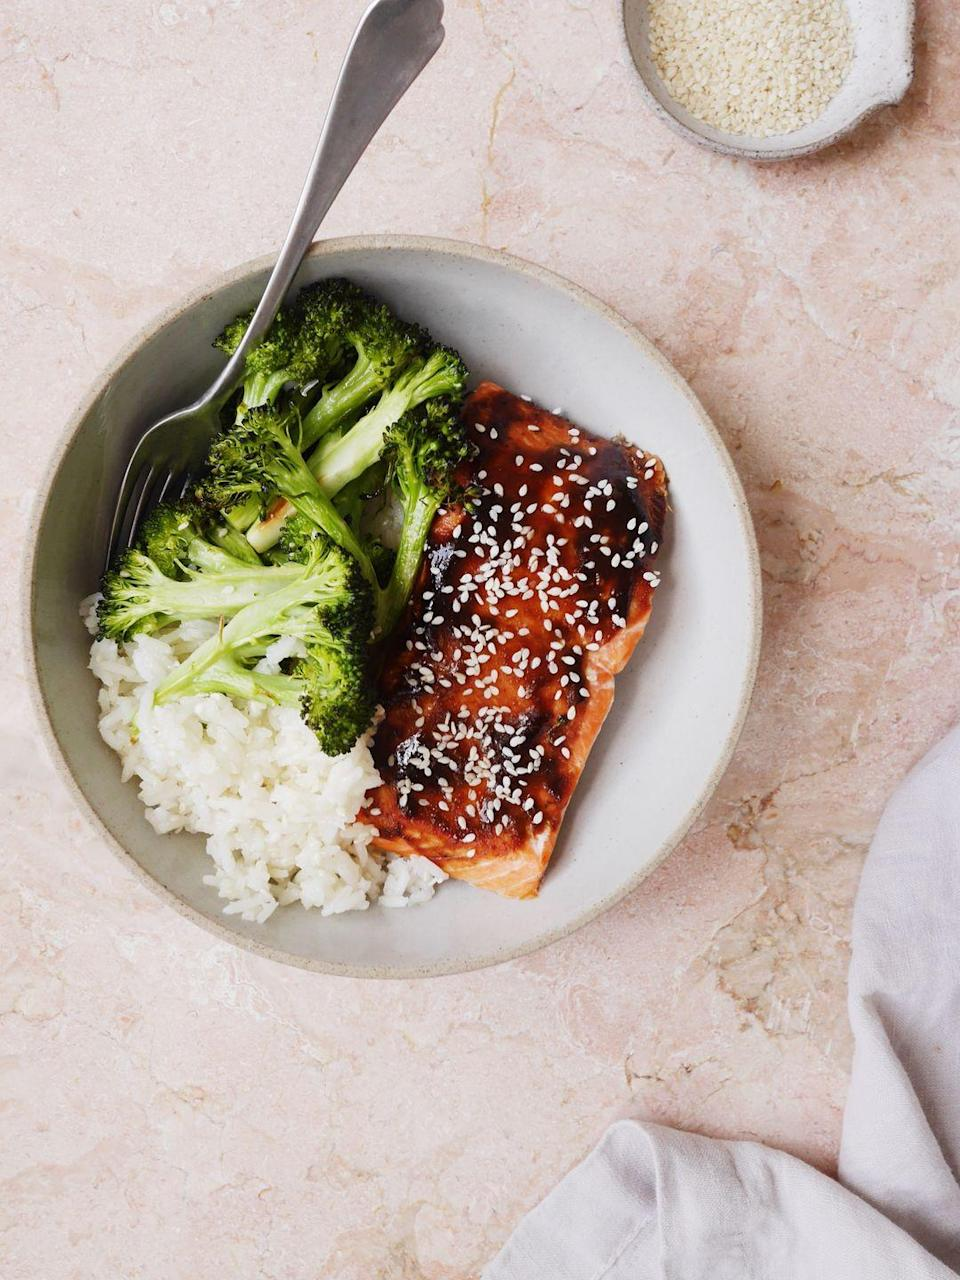 "<p>Dinner bowl game strong.</p><p>Get the recipe from <a href=""https://www.delish.com/cooking/recipe-ideas/recipes/a52439/hoisin-glazed-salmon-with-broccoli-and-sesame-rice-recipe/"" rel=""nofollow noopener"" target=""_blank"" data-ylk=""slk:Delish"" class=""link rapid-noclick-resp"">Delish</a>.</p>"